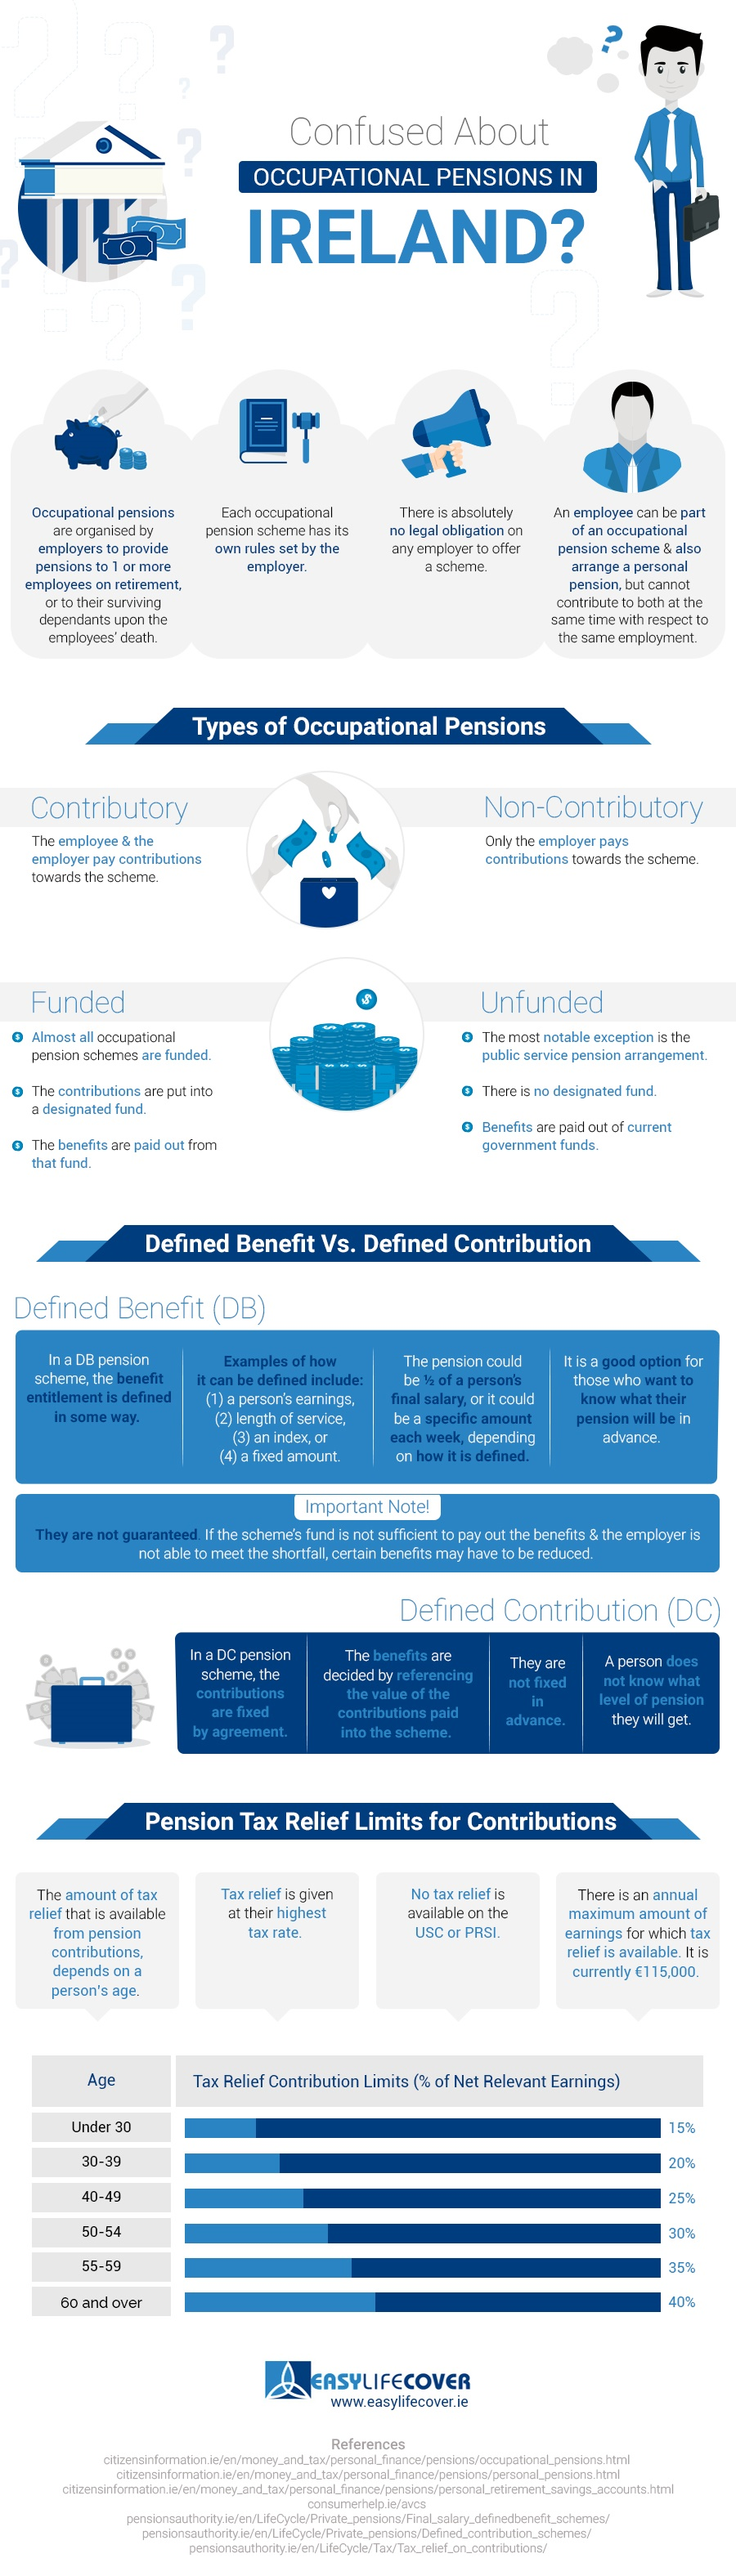 Occupational-Pensions-in-Ireland-Infographic-plaza